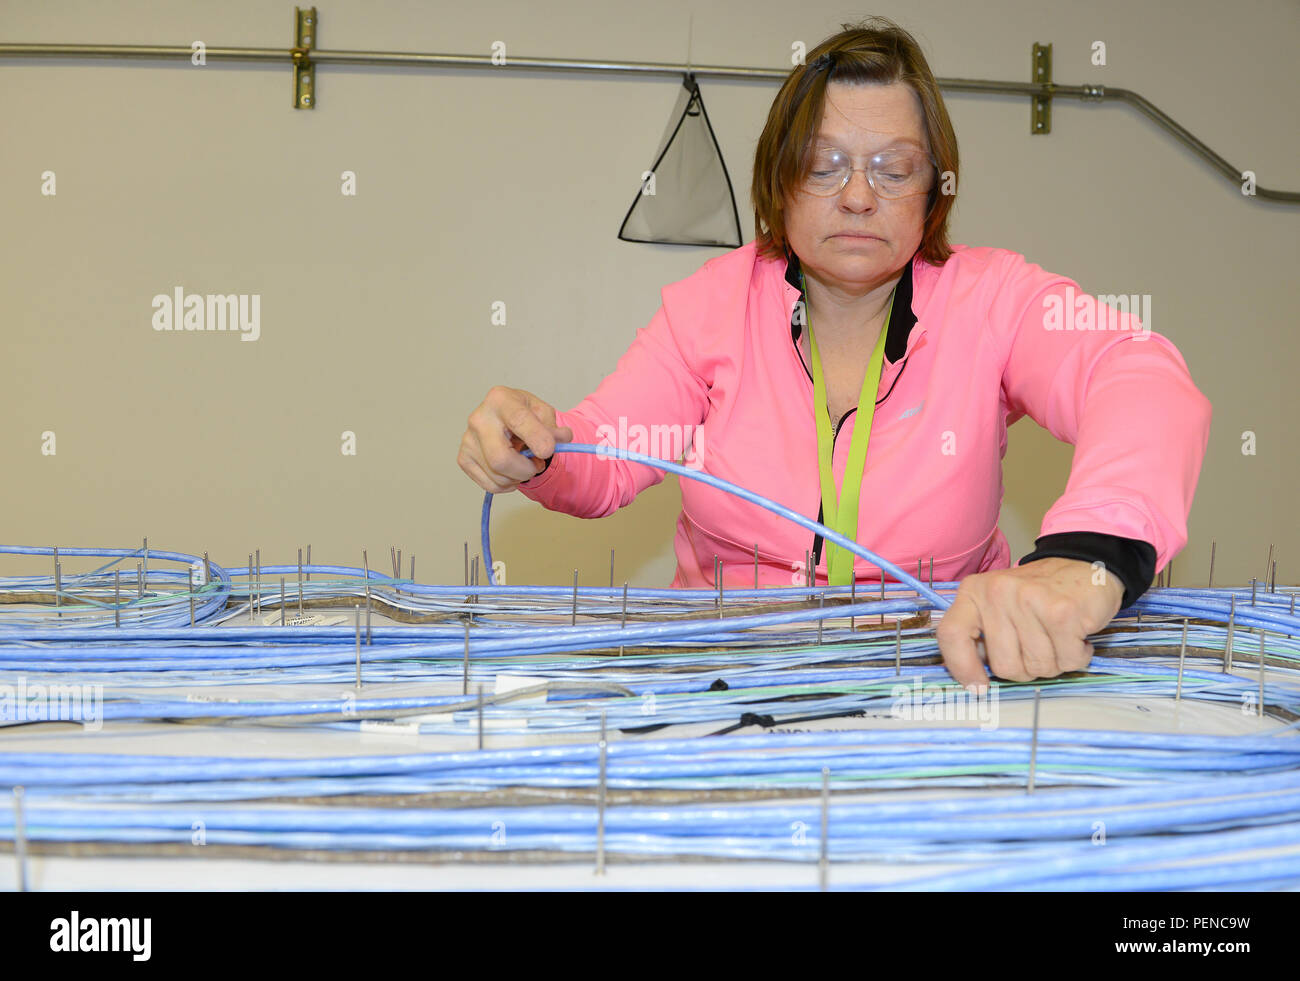 Wiring Harness Stock Photos Images Alamy Suppliers India Robin Guy 569th Electronics Maintenance Squadron Mechanic Assembles An F 15 Sniper